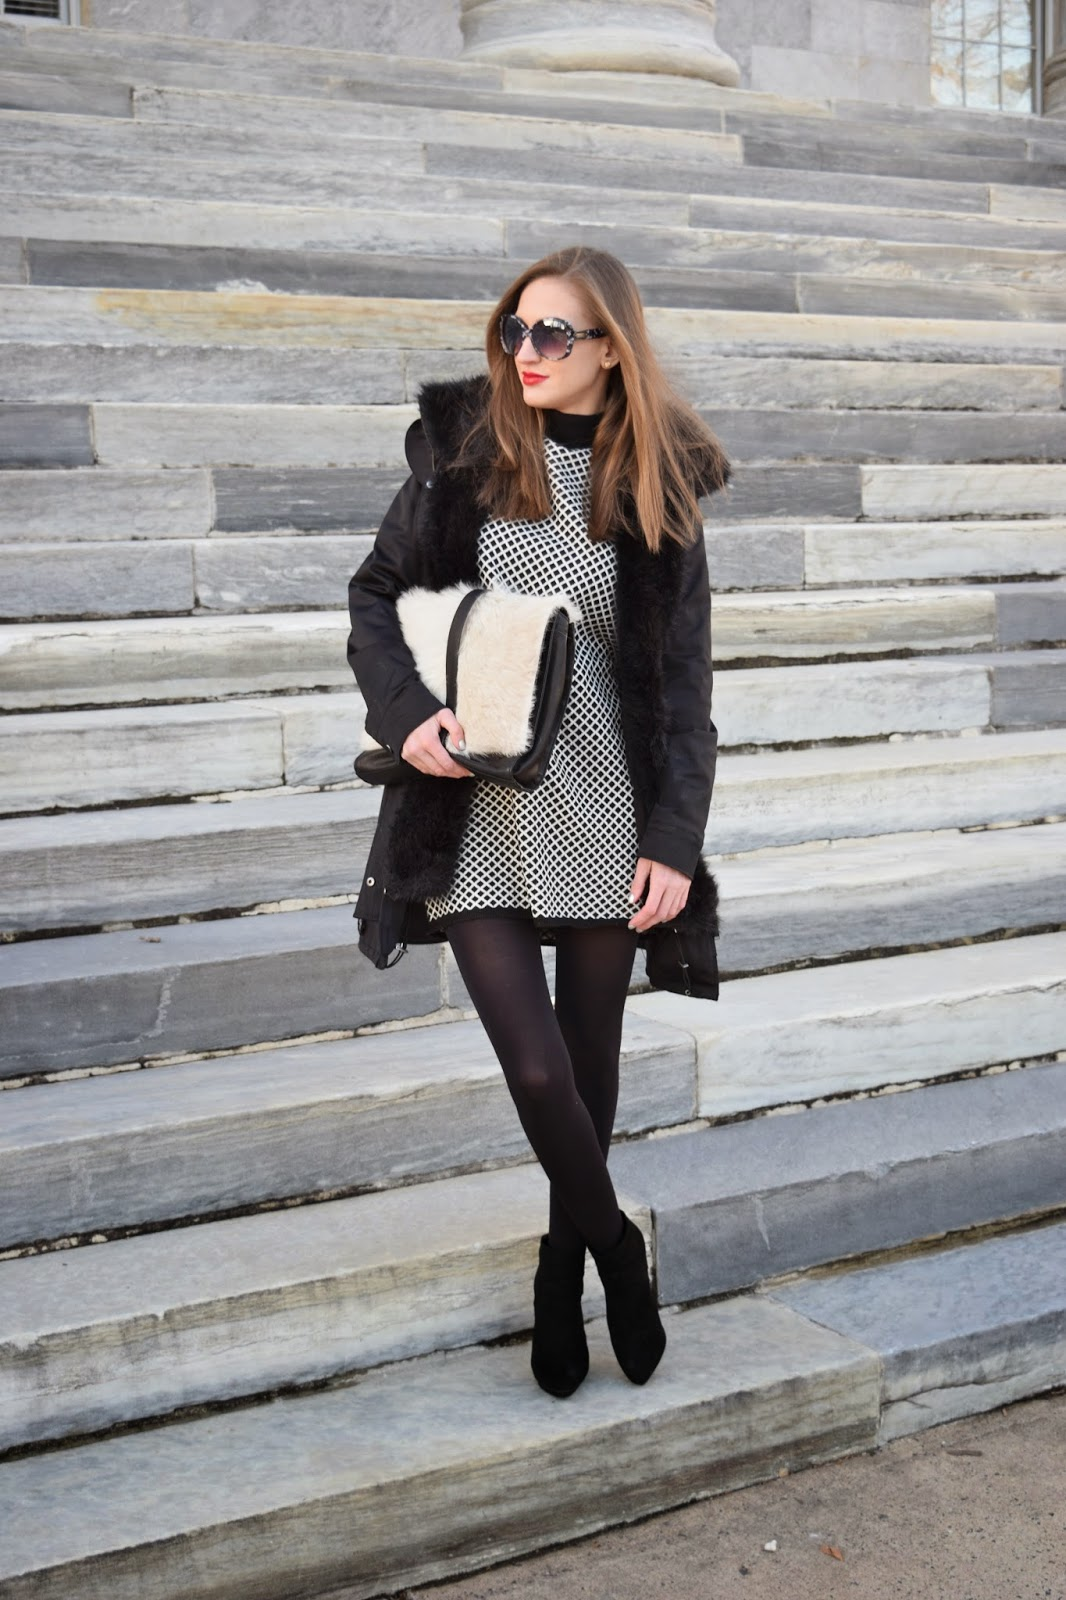 Zara Black And White Shift Dress, Zara Suede Platform Booties, Little Liffner Fuzzy Clutch